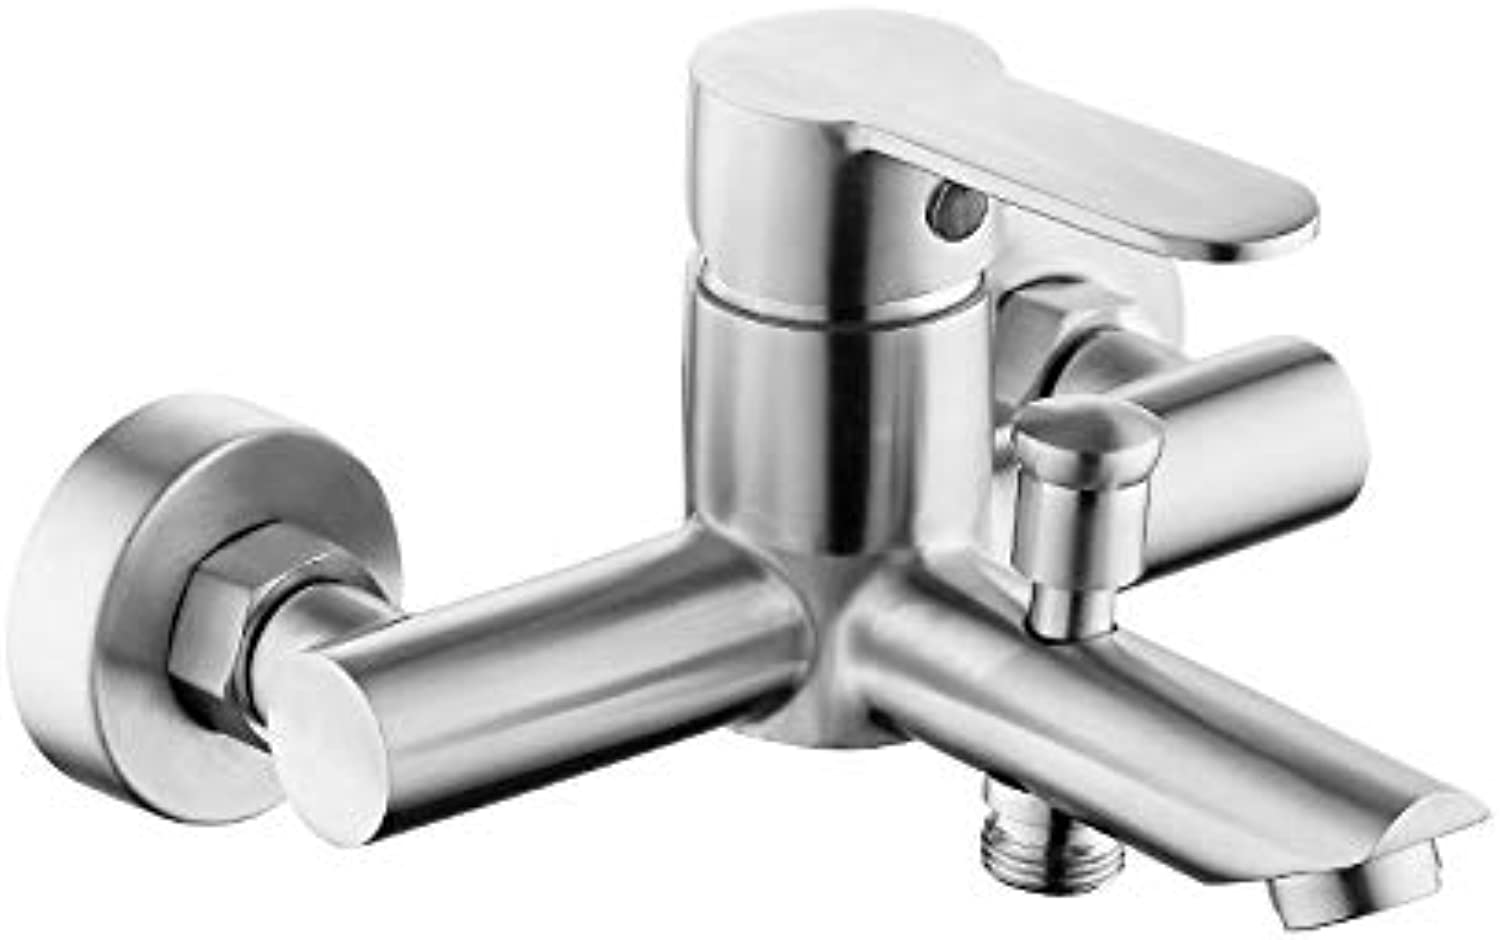 304 Stainless Steel Bathtub Brushed Faucet Hot and Cold Water Mixing Valve Rain Shower Triple Faucet